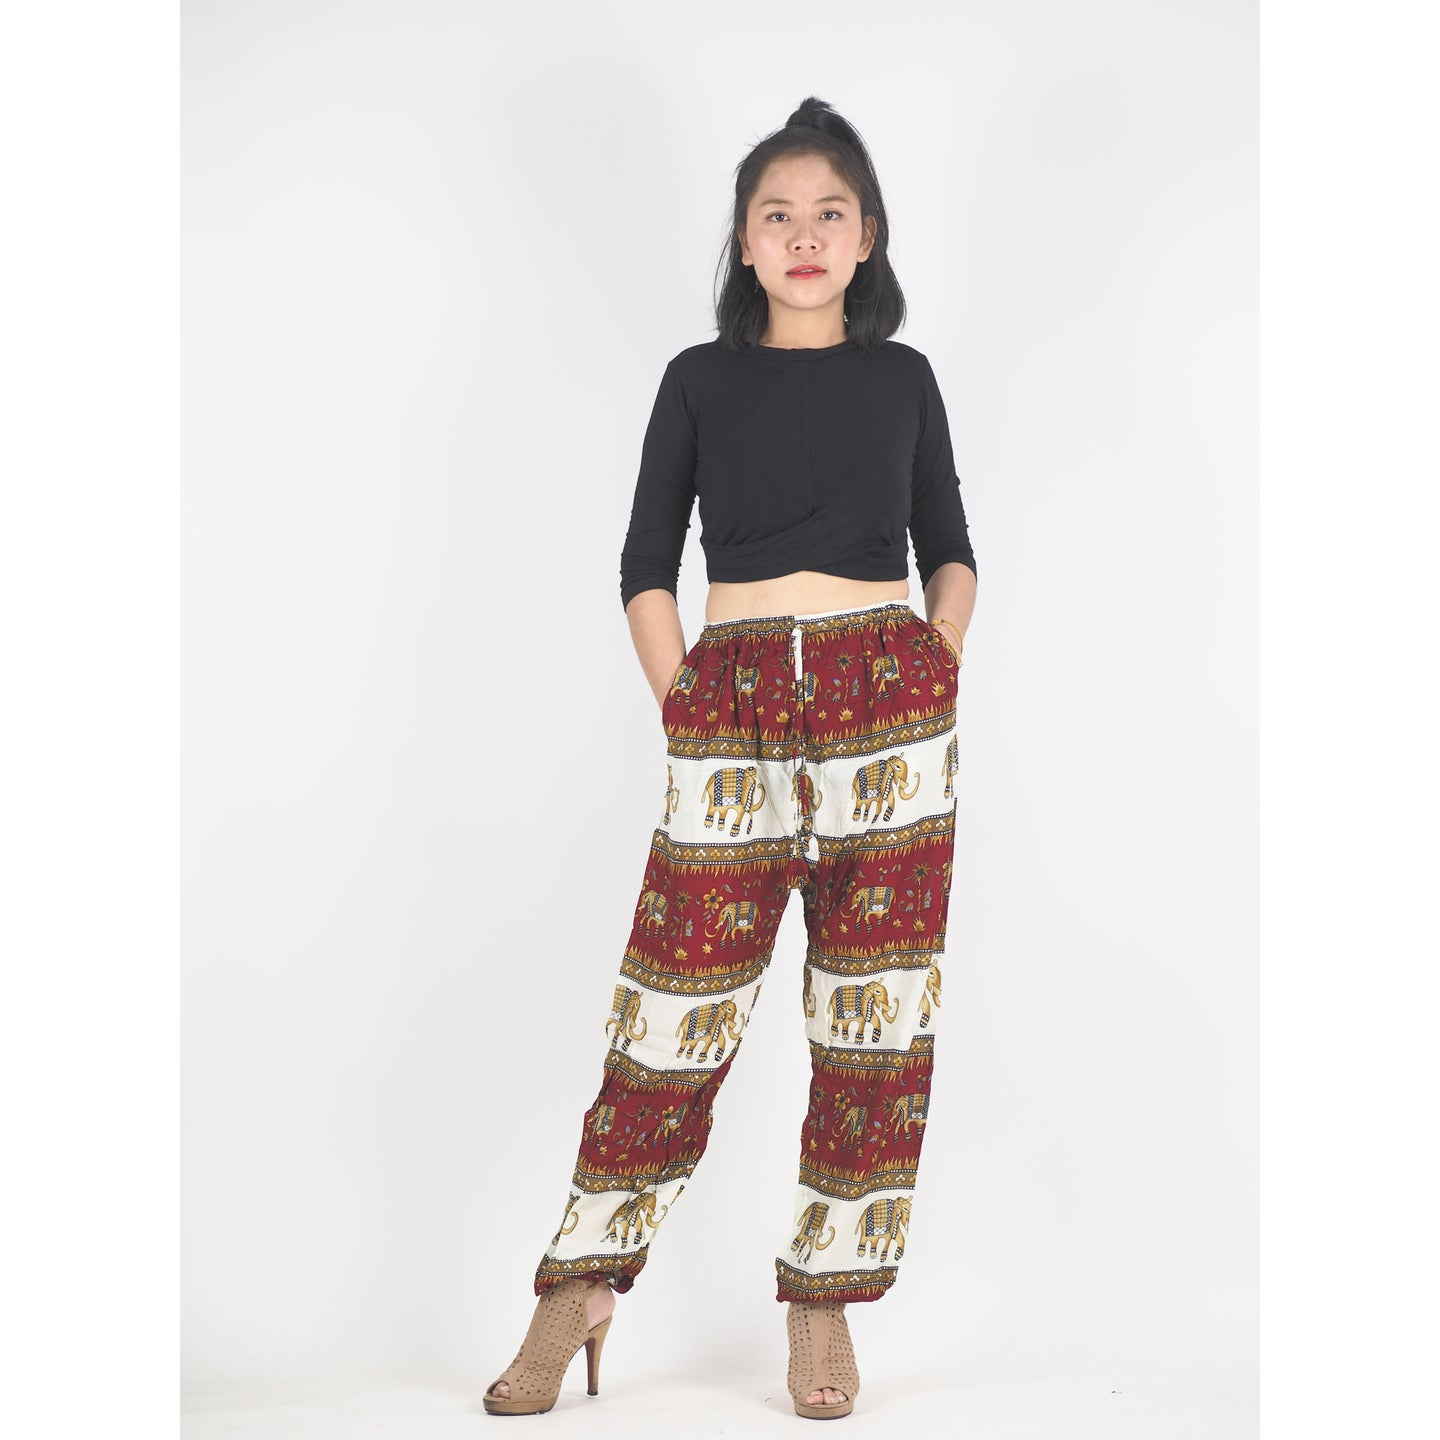 Royal Elephant Unisex Drawstring Genie Pants in Dark Red PP0110 020024 04